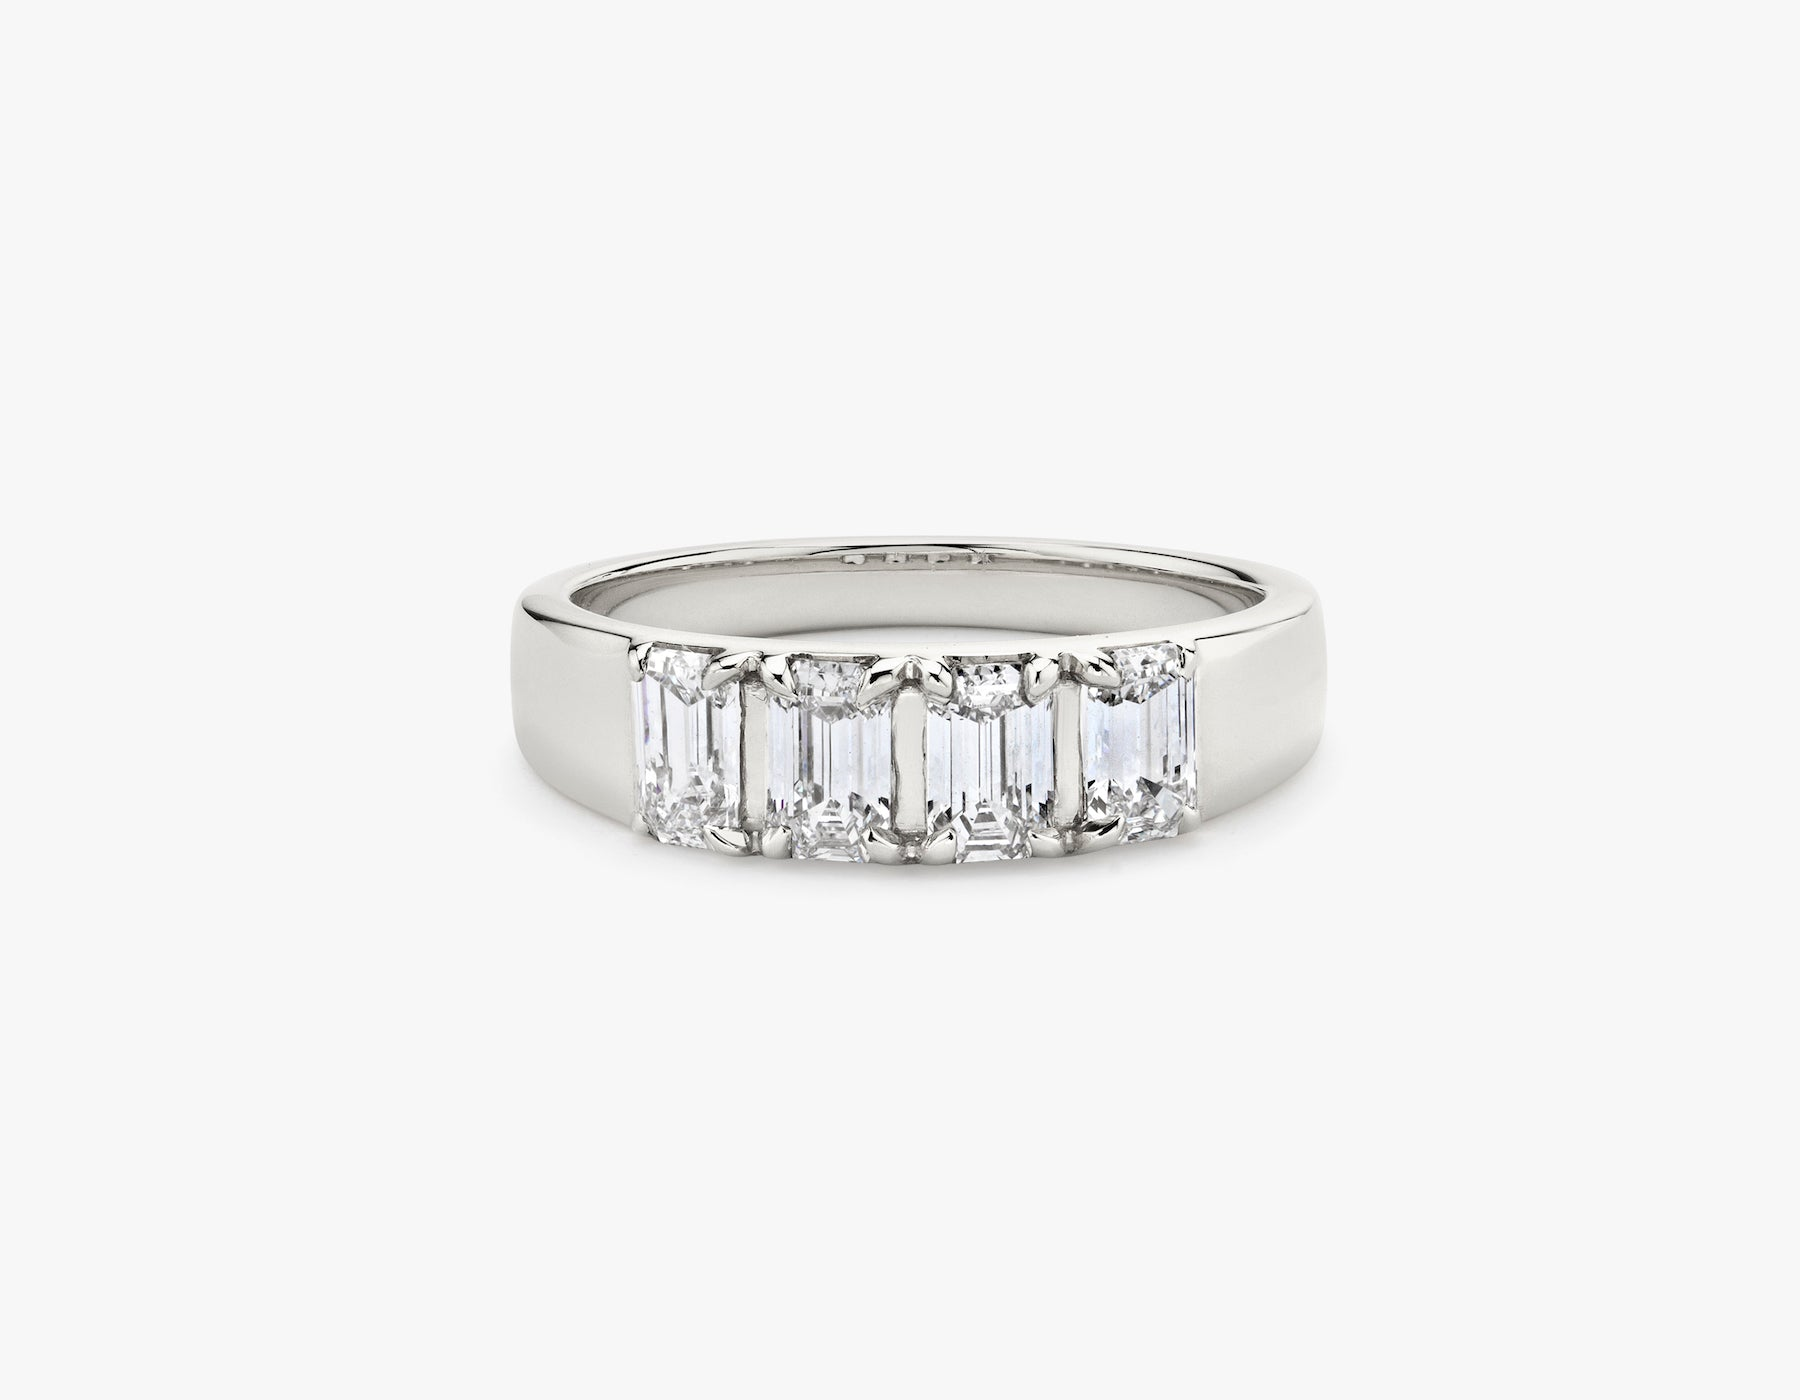 Vrai simple minimalist Emerald Diamond Tetrad Band .25ct Emerald Diamond Ring, 14K White Gold